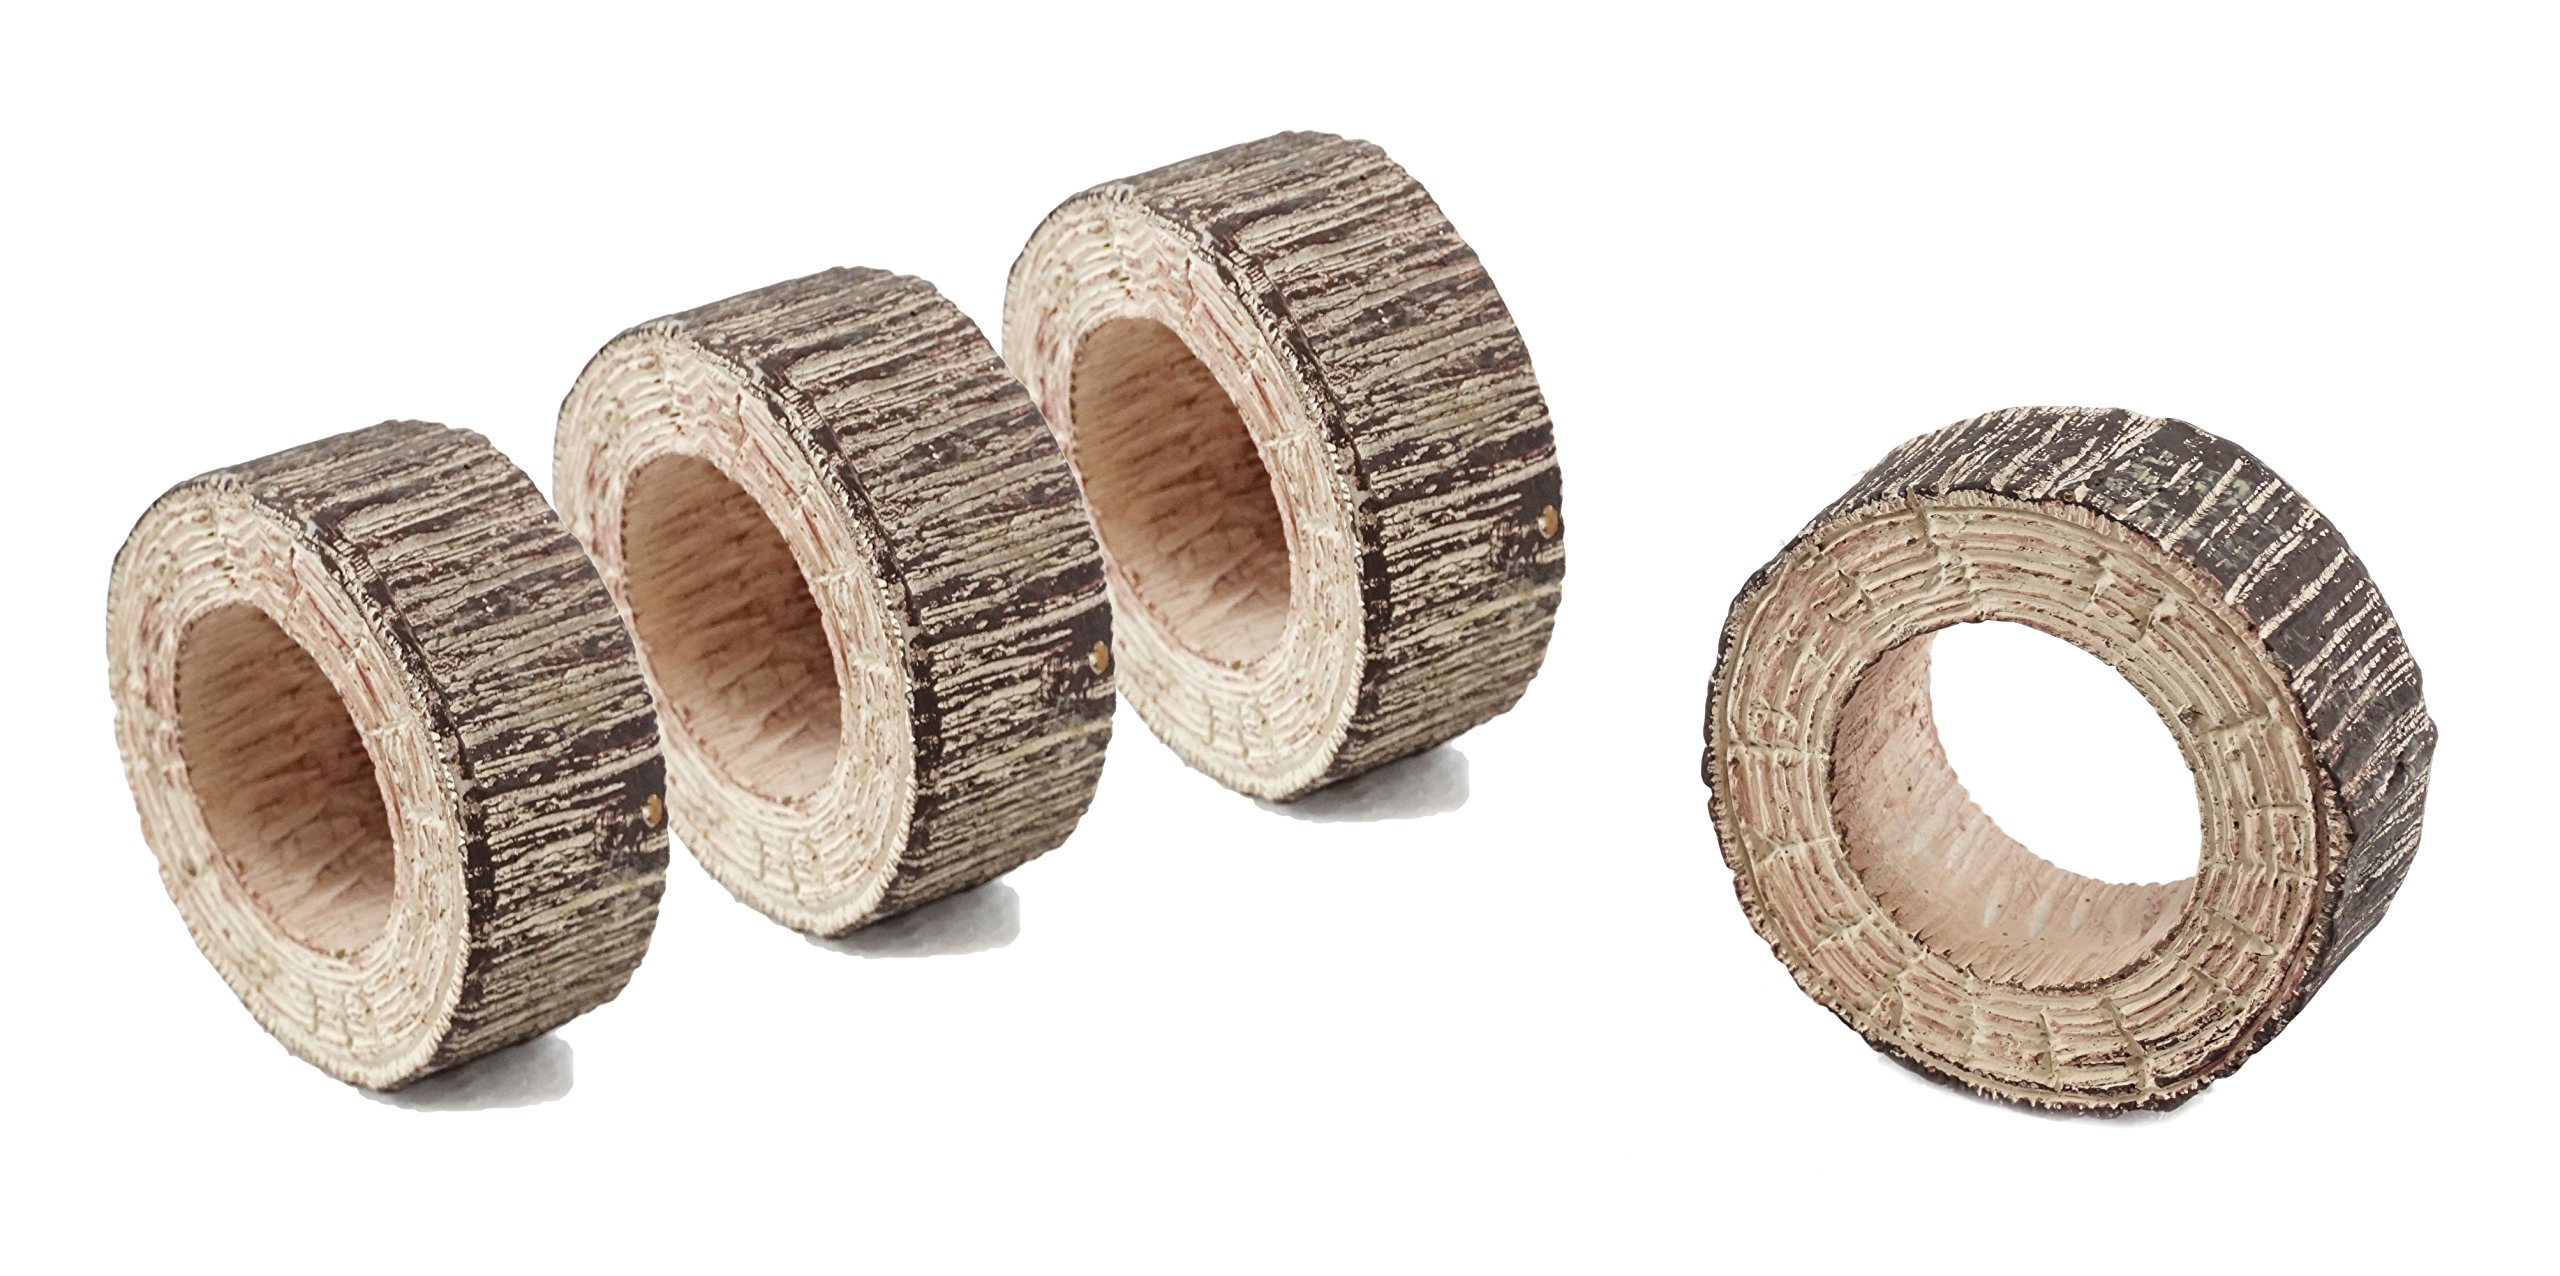 Caffco Rustic Style Tree Log Napkin Rings - Set of 4 by Caffco (Image #1)